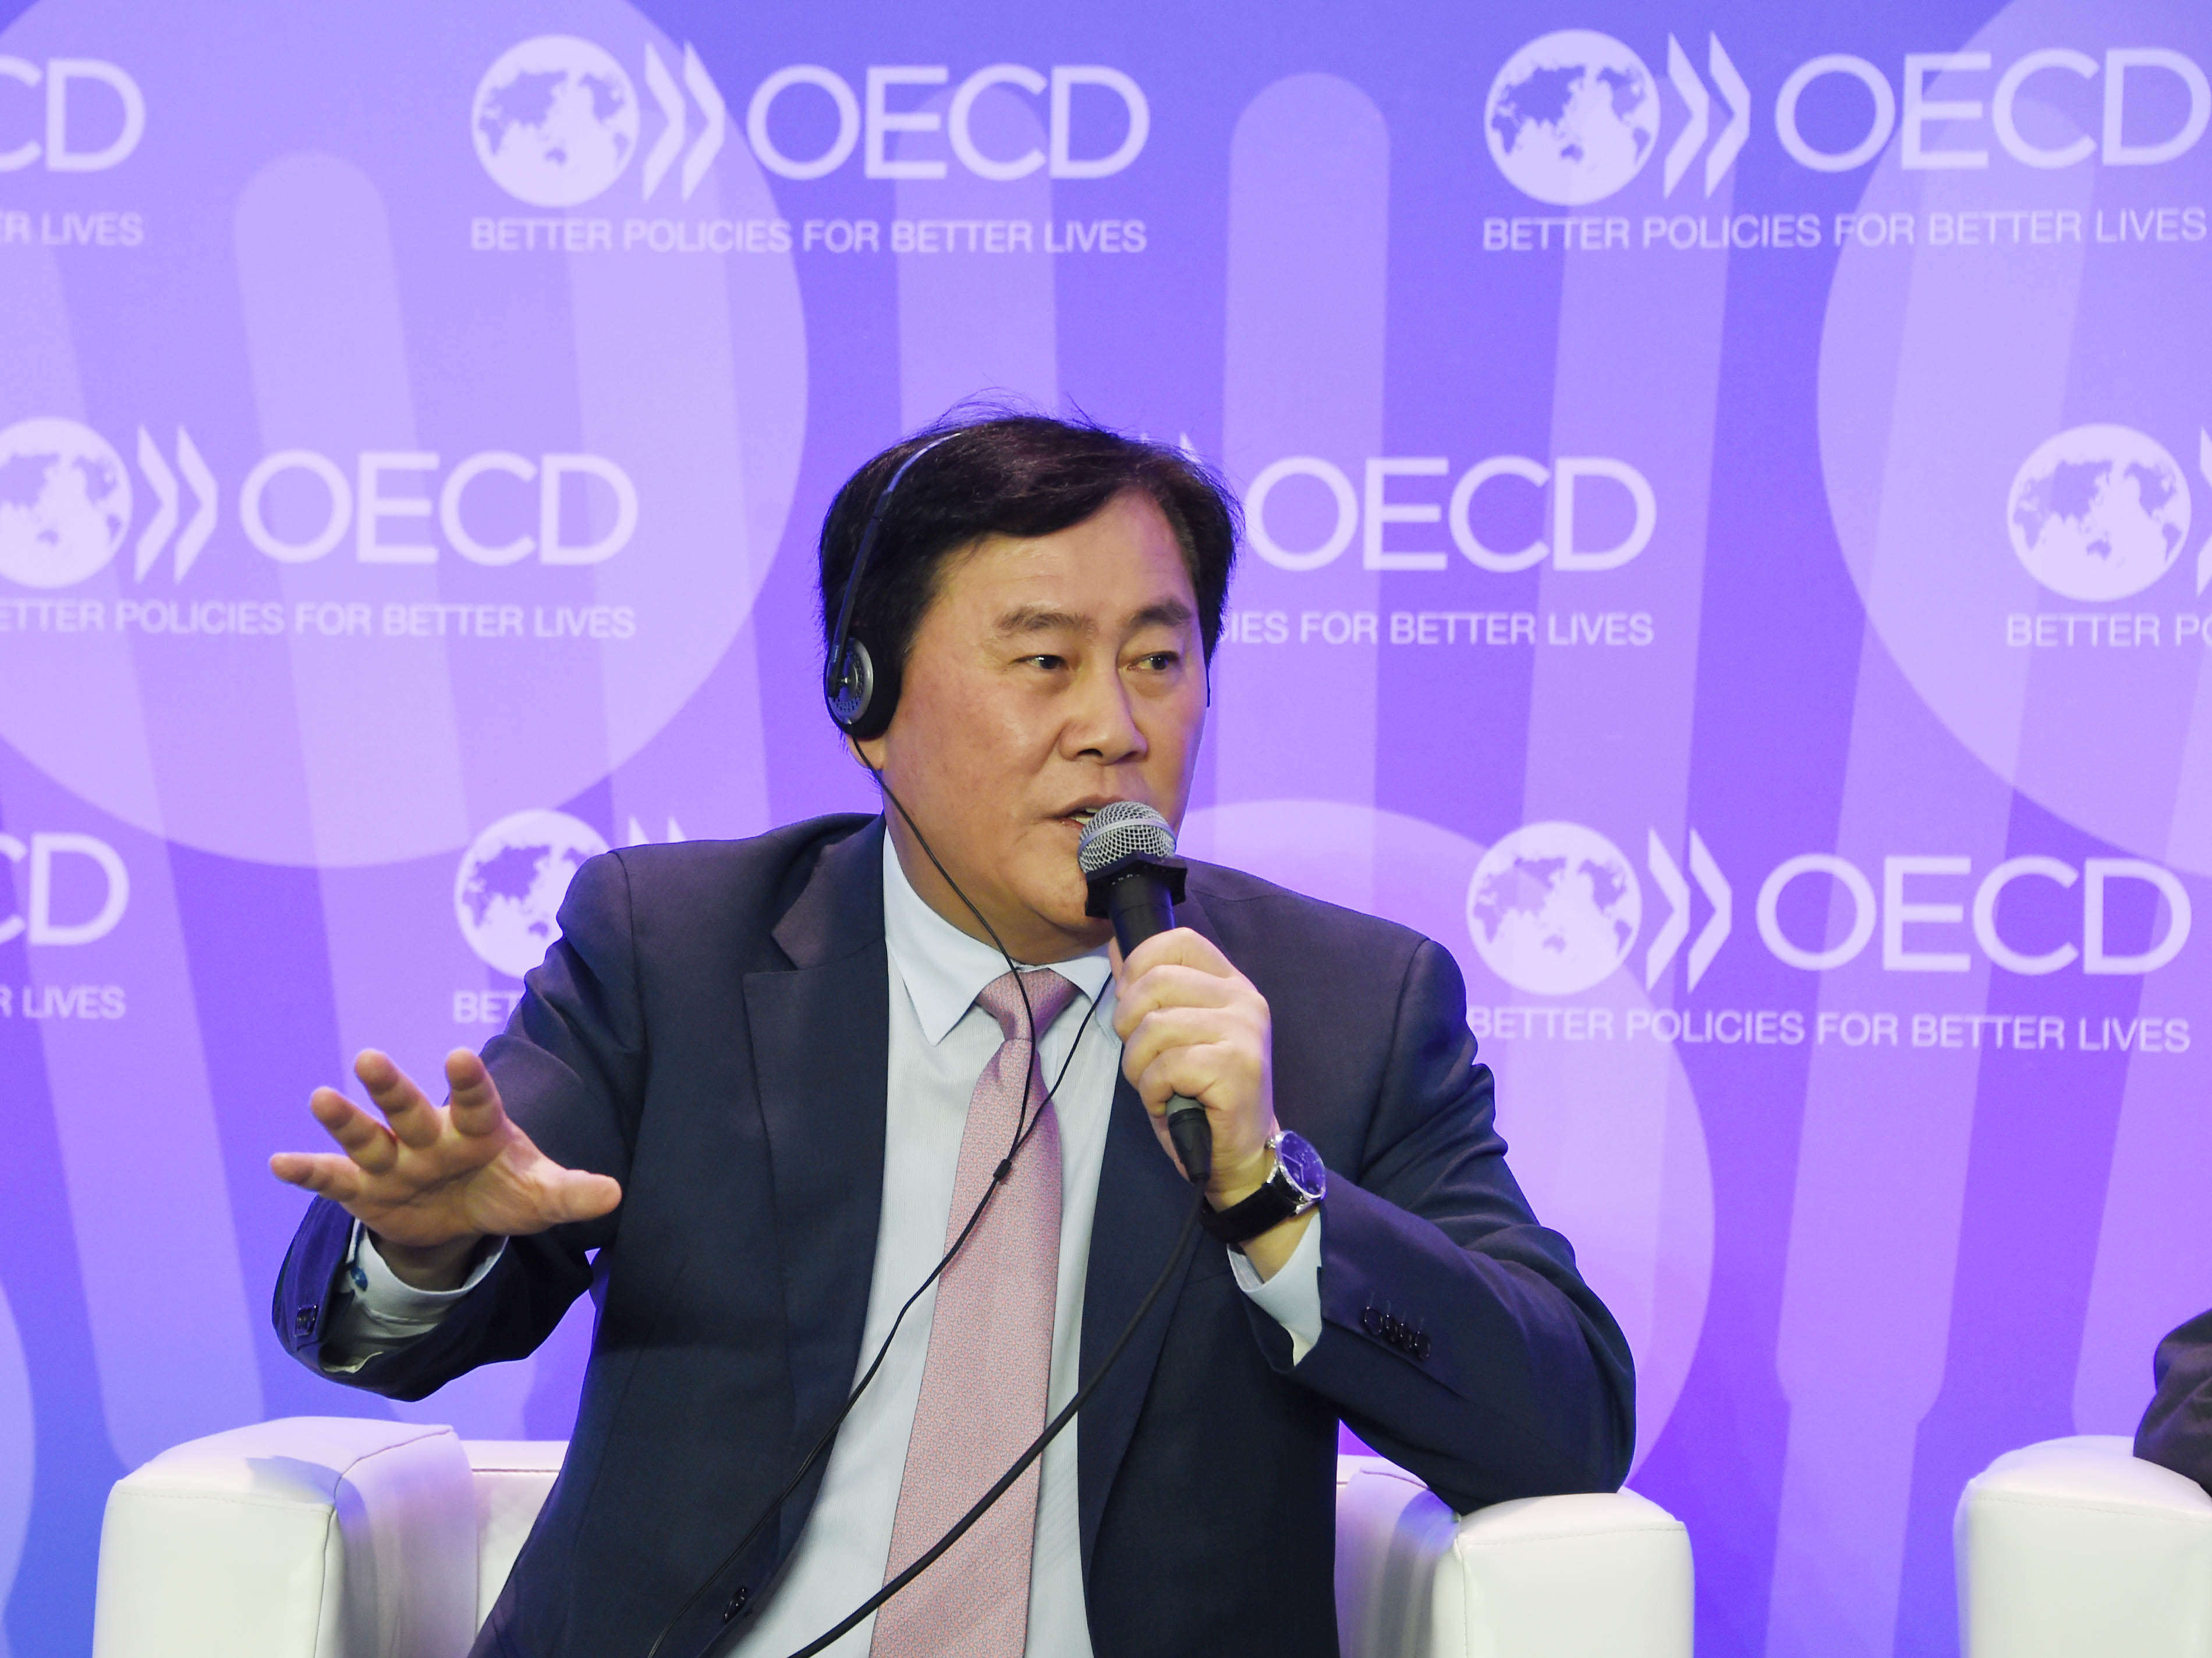 Deputy Prime Minister Choi Attends OECD Ministerial Council Meeting in Paris